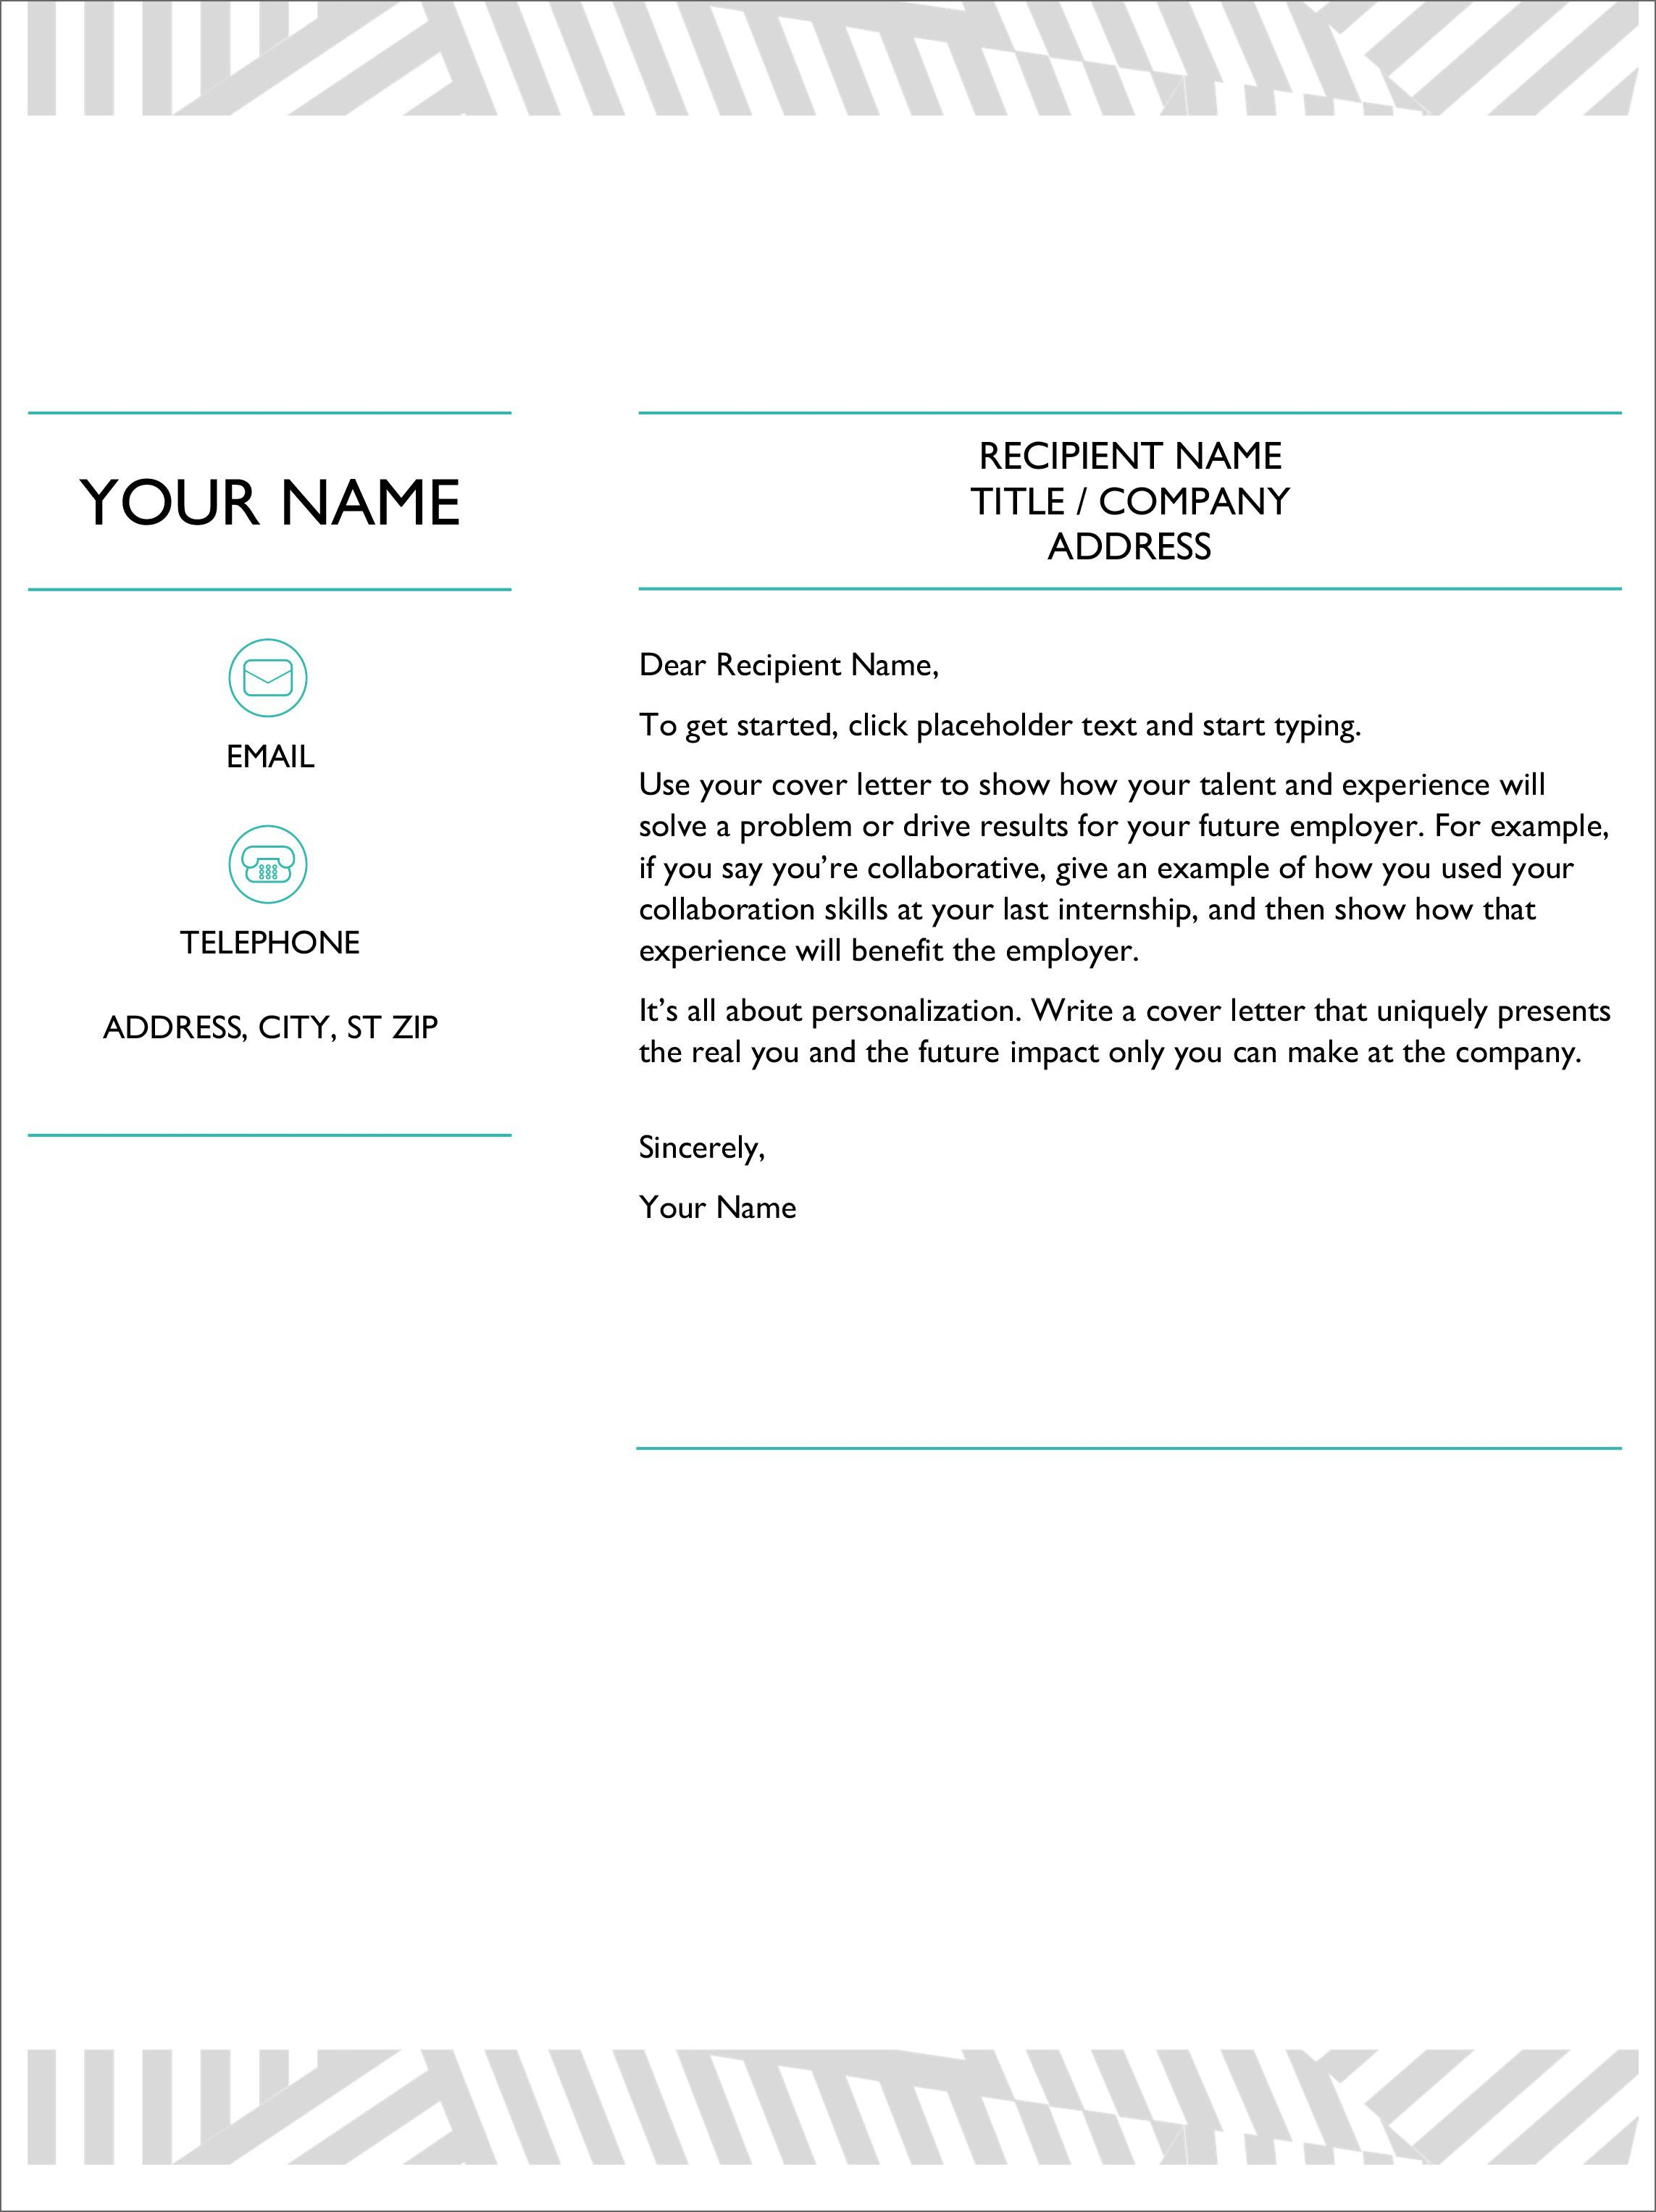 007 Excellent Window Resume Cover Letter Template Photo  TemplatesFull